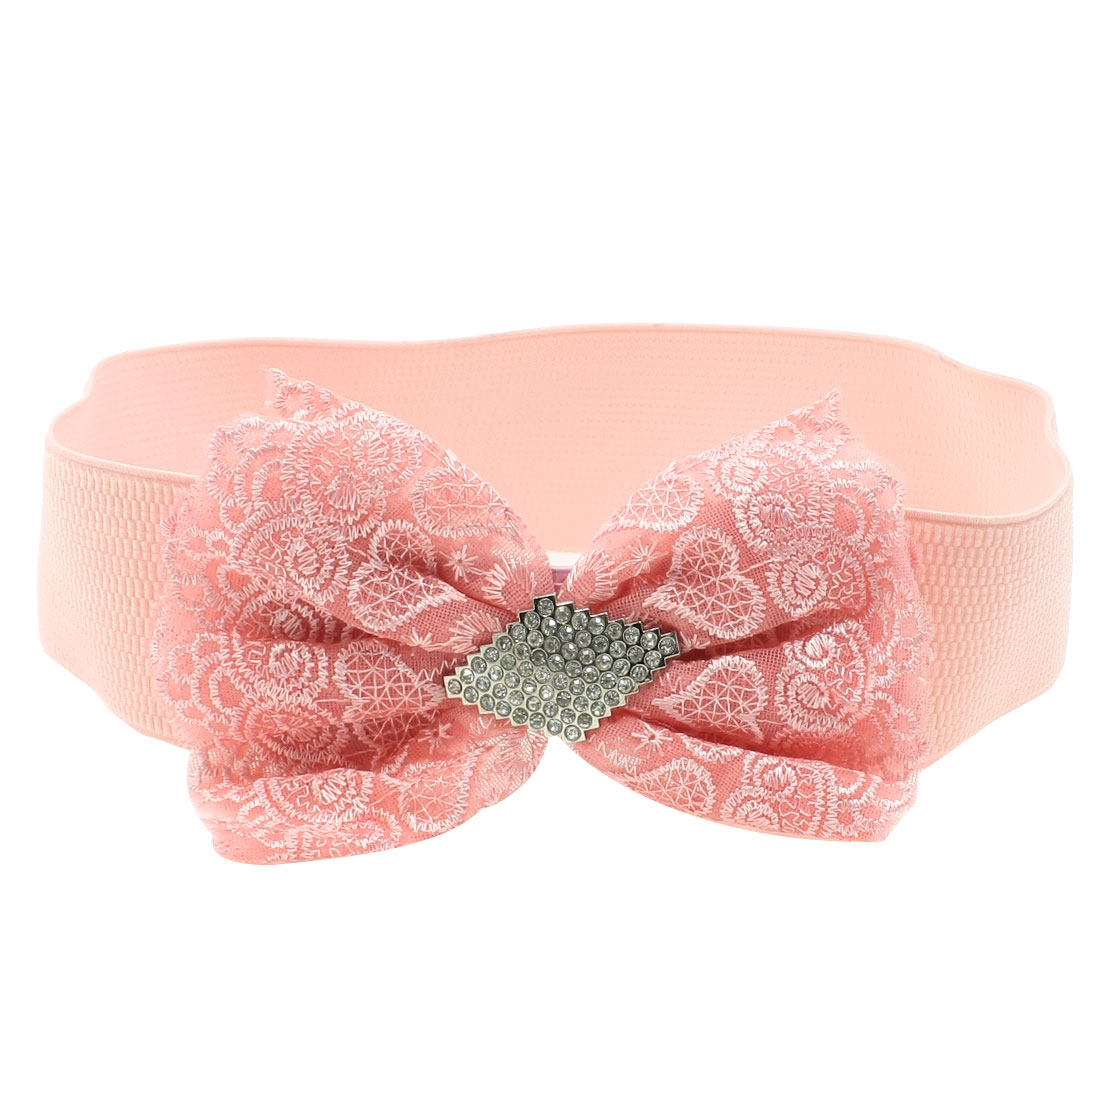 Woman Plastic Crystal Bowknot Decor Press Button Buckle Pink Elastic Cinch Belt